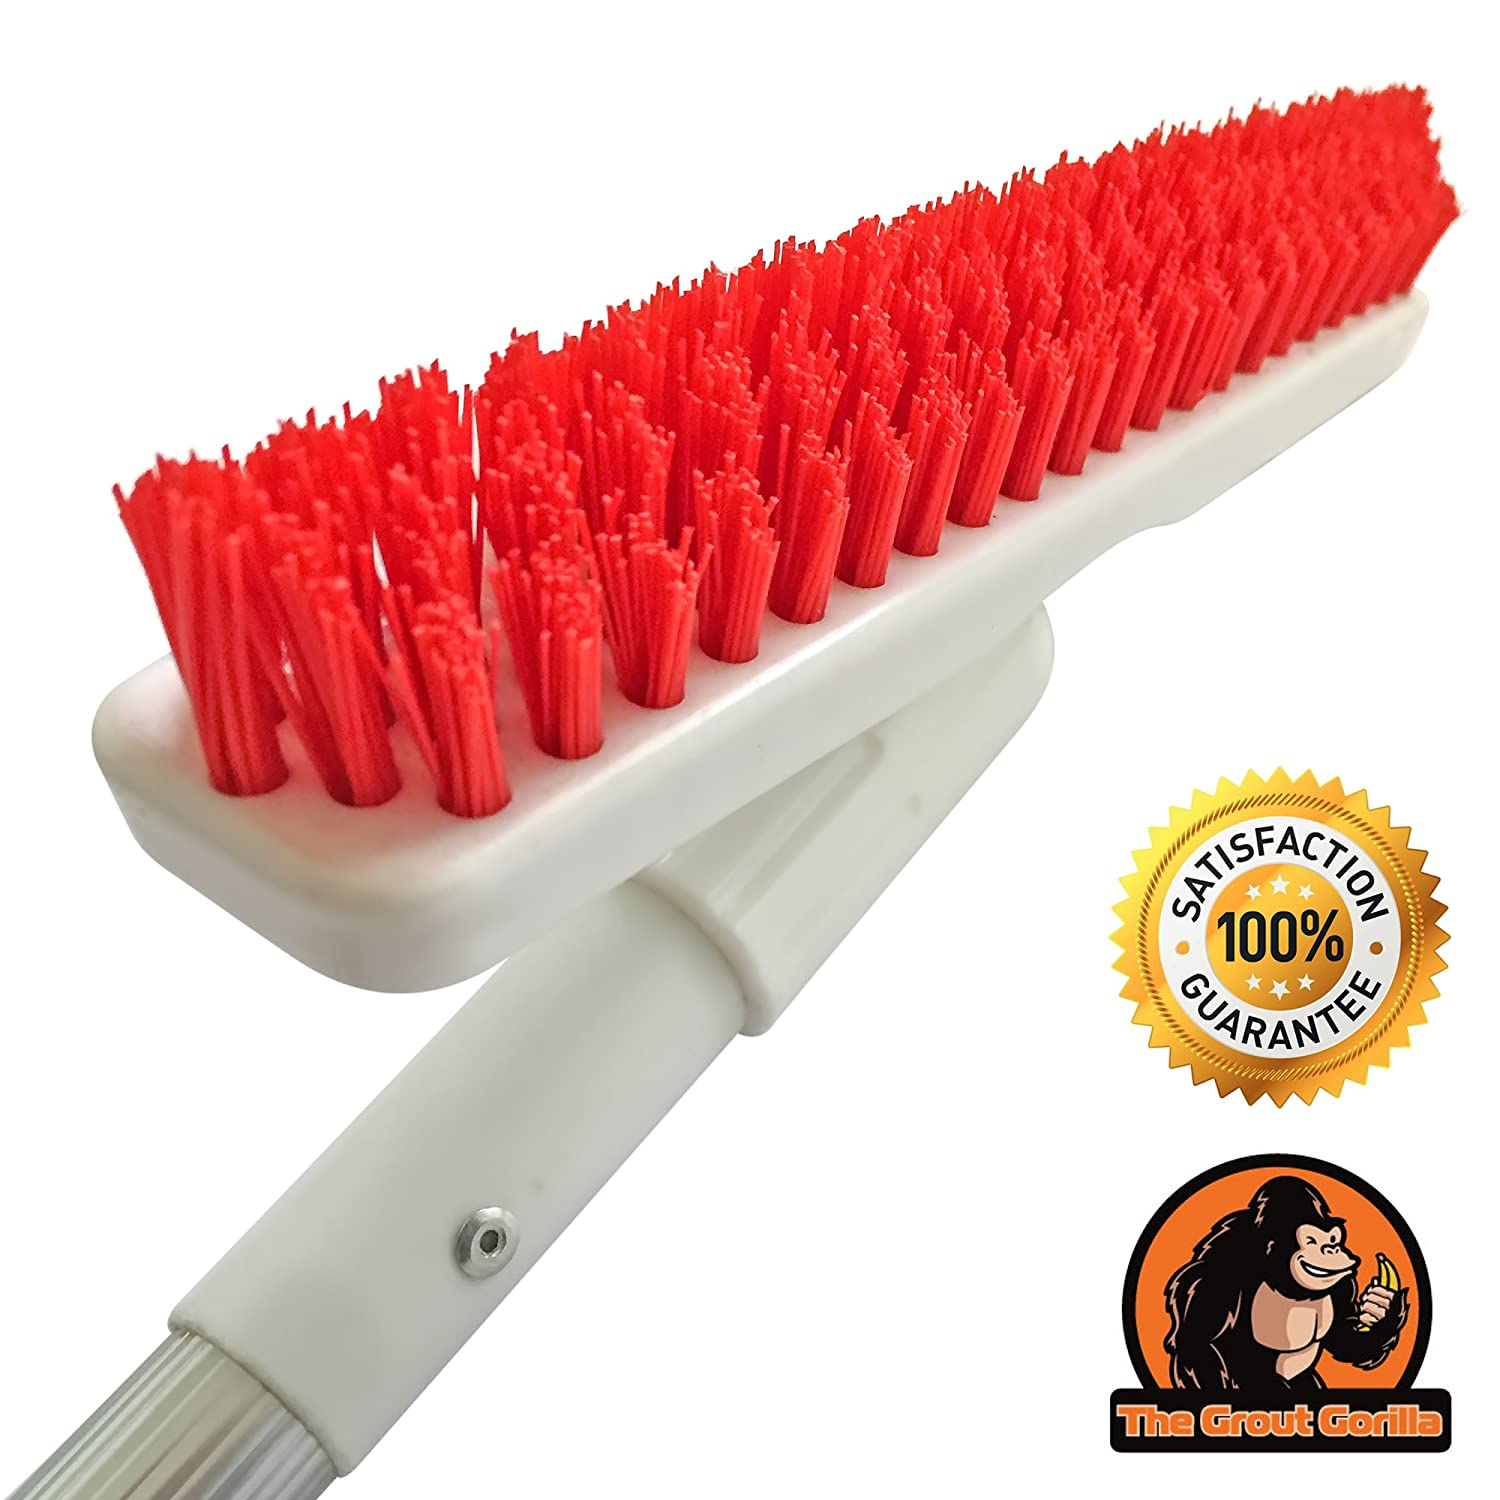 Grout Brush With Long Handle Included! Clean Your Grout While Standing Up In Half The Time! No More On Your Hands & Knees Grout Cleaning Drudgery! THE GROUT GORILLA